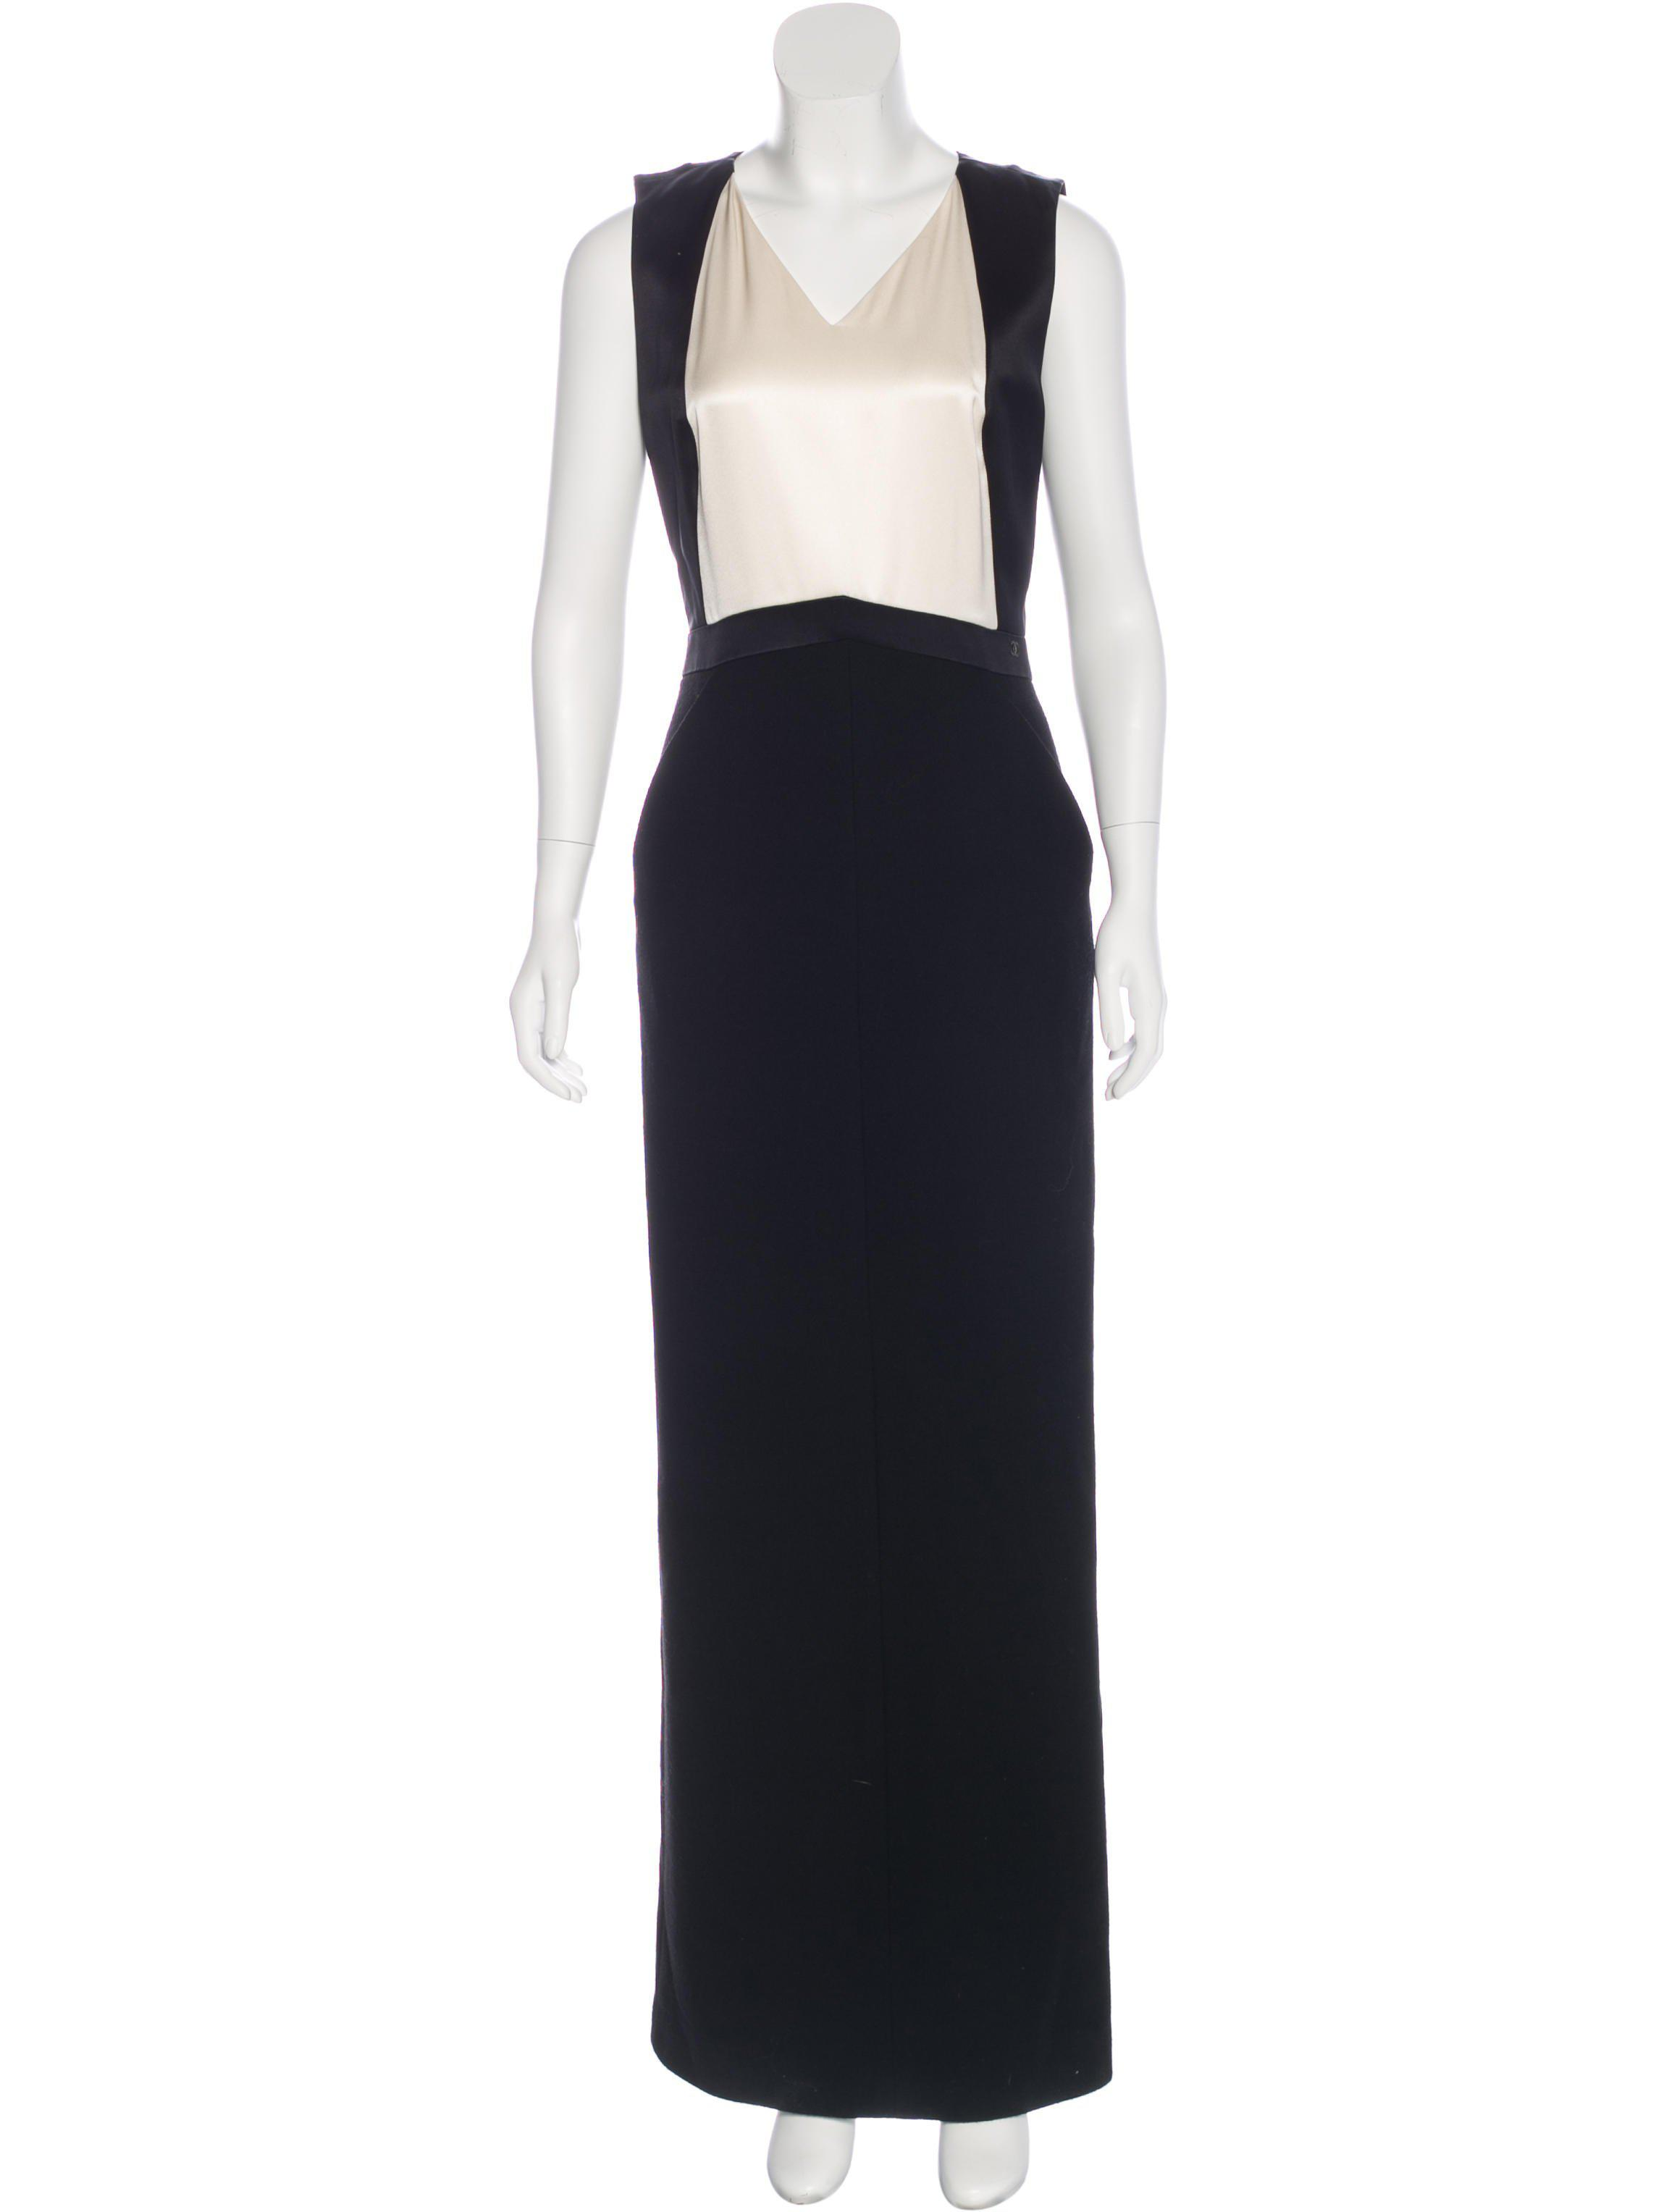 Lyst - Chanel Wool Evening Gown in White